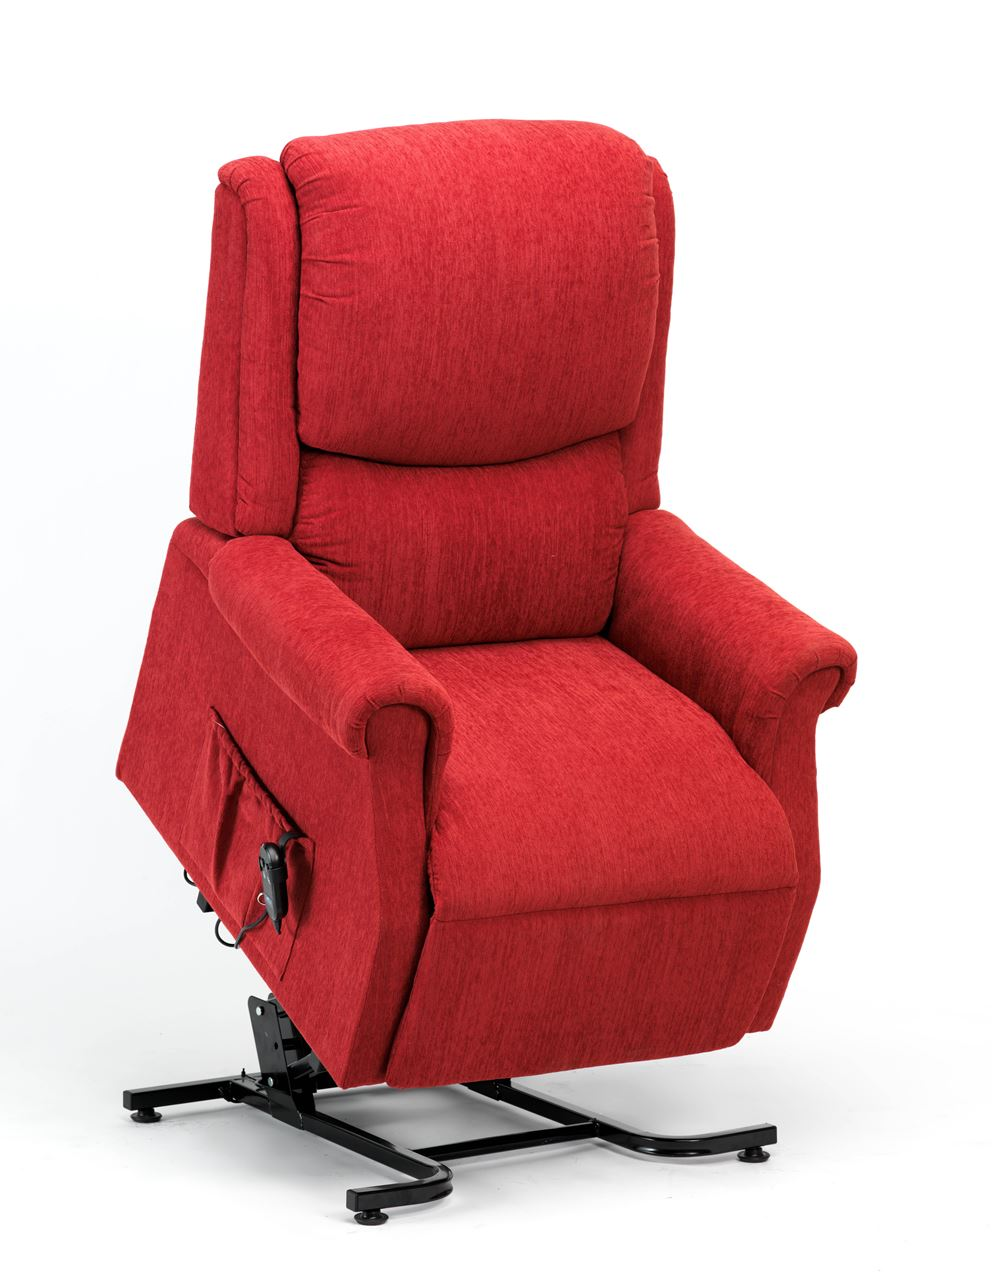 Picture for category Indiana Riser Recliner